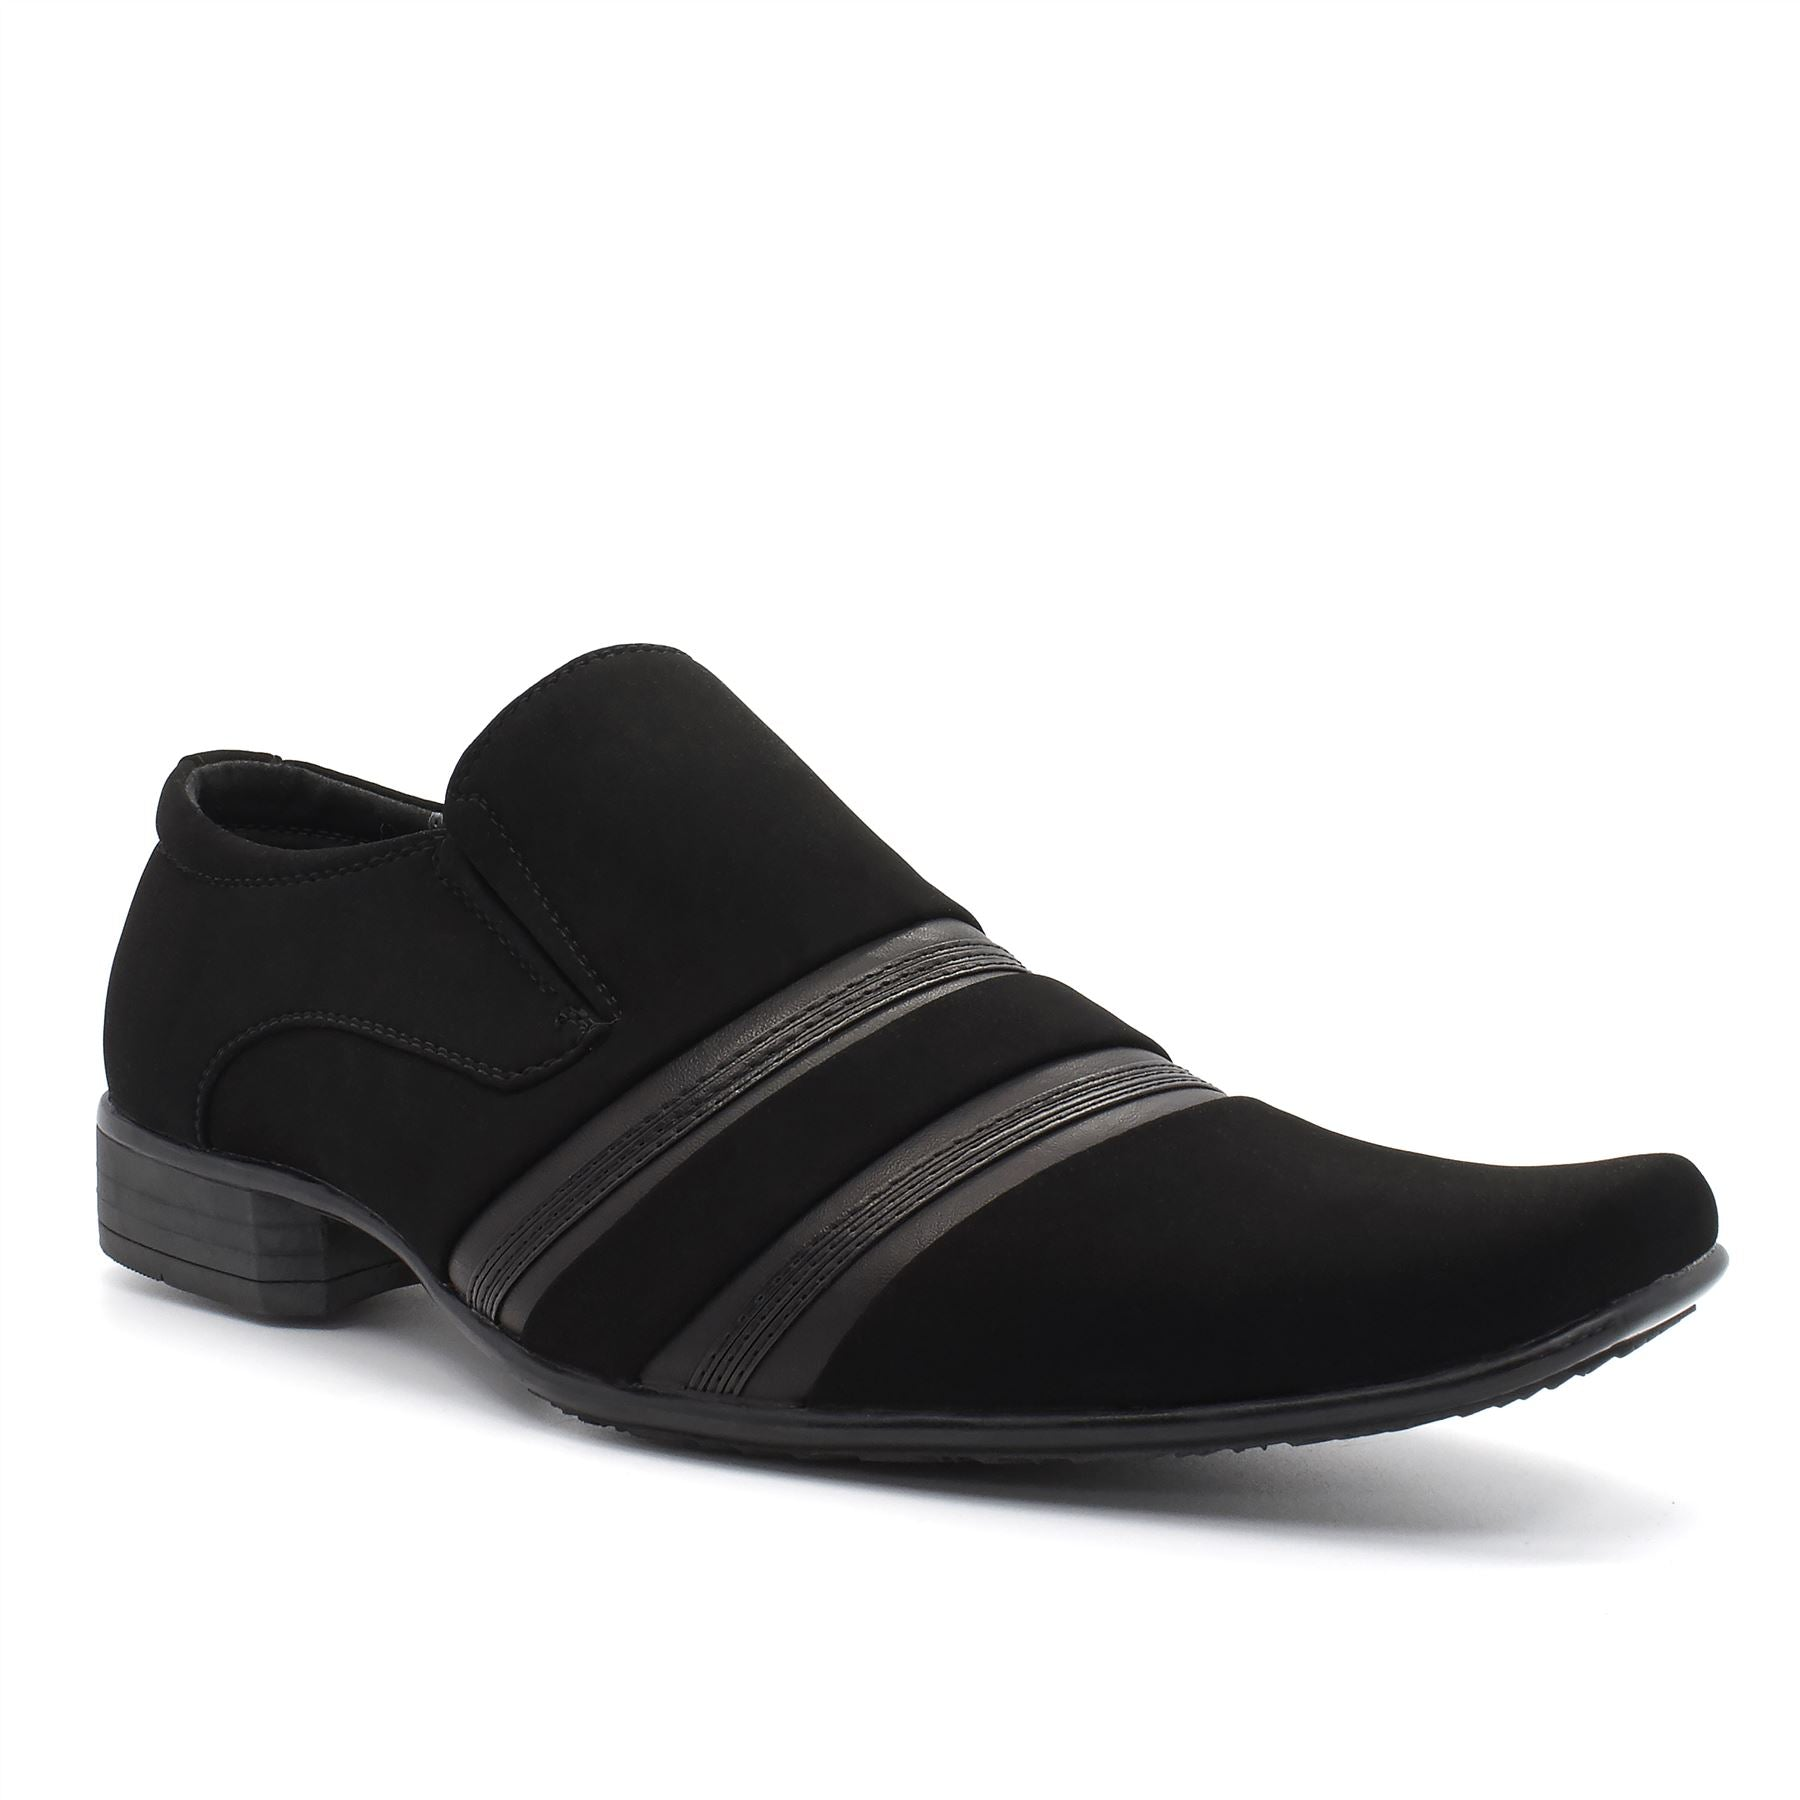 Black Suedette Slip On